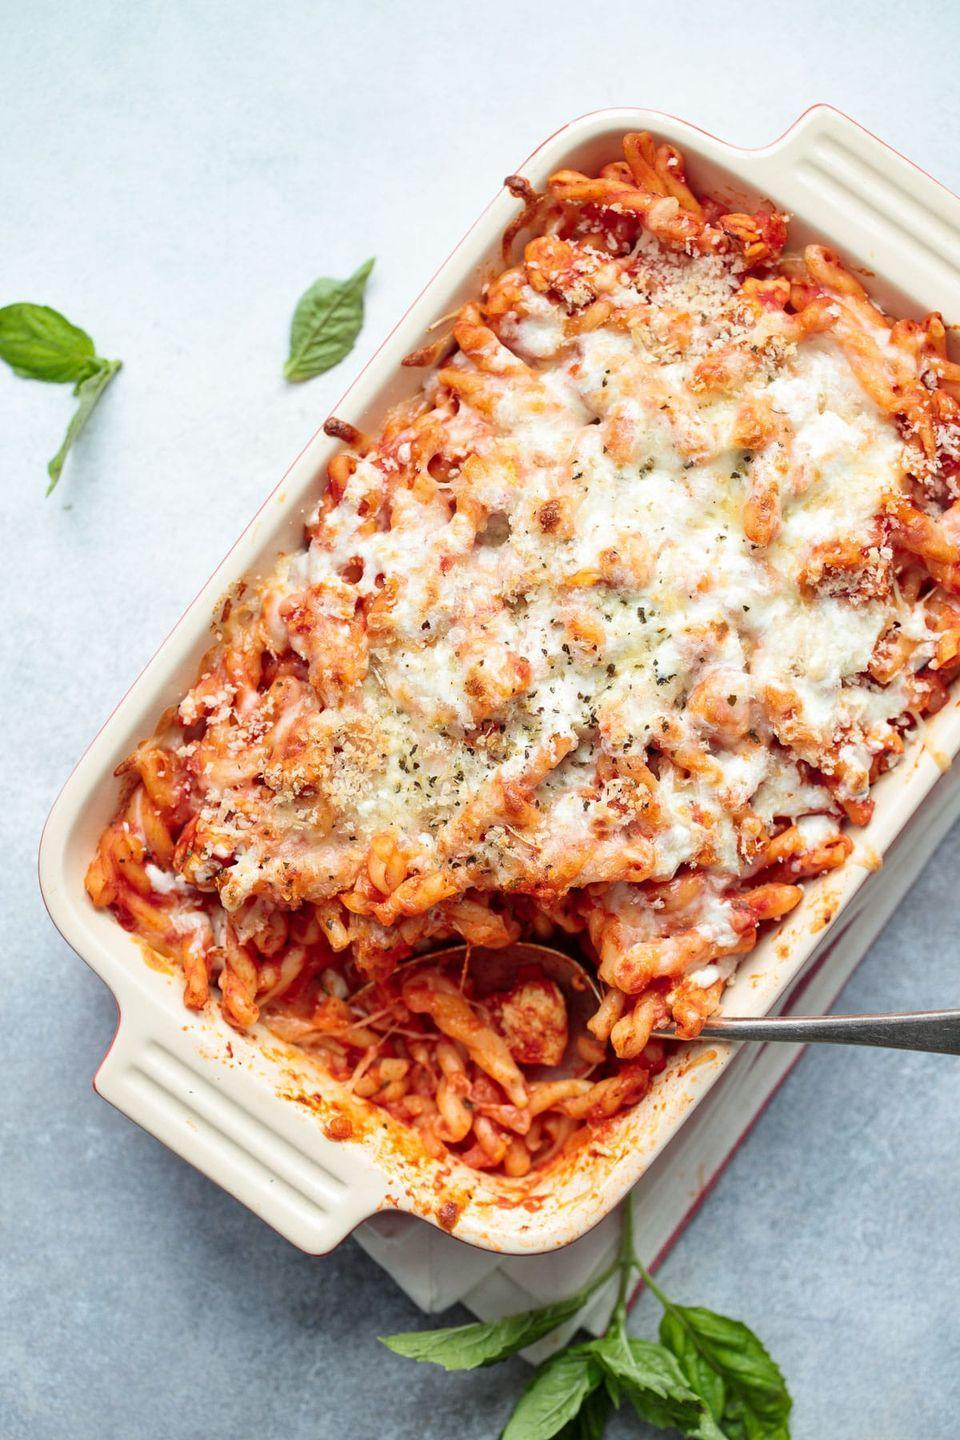 """<p>The real star of this pasta bake is the topping: Toasted breadcrumbs and melty mozzarella come together for an unforgettable finish.</p><p><strong>Get the recipe at <a href=""""https://www.loveandoliveoil.com/2018/06/cheesy-chicken-parmesan-pasta-bake.html"""" rel=""""nofollow noopener"""" target=""""_blank"""" data-ylk=""""slk:Love and Olive Oil"""" class=""""link rapid-noclick-resp"""">Love and Olive Oil</a>.</strong></p>"""